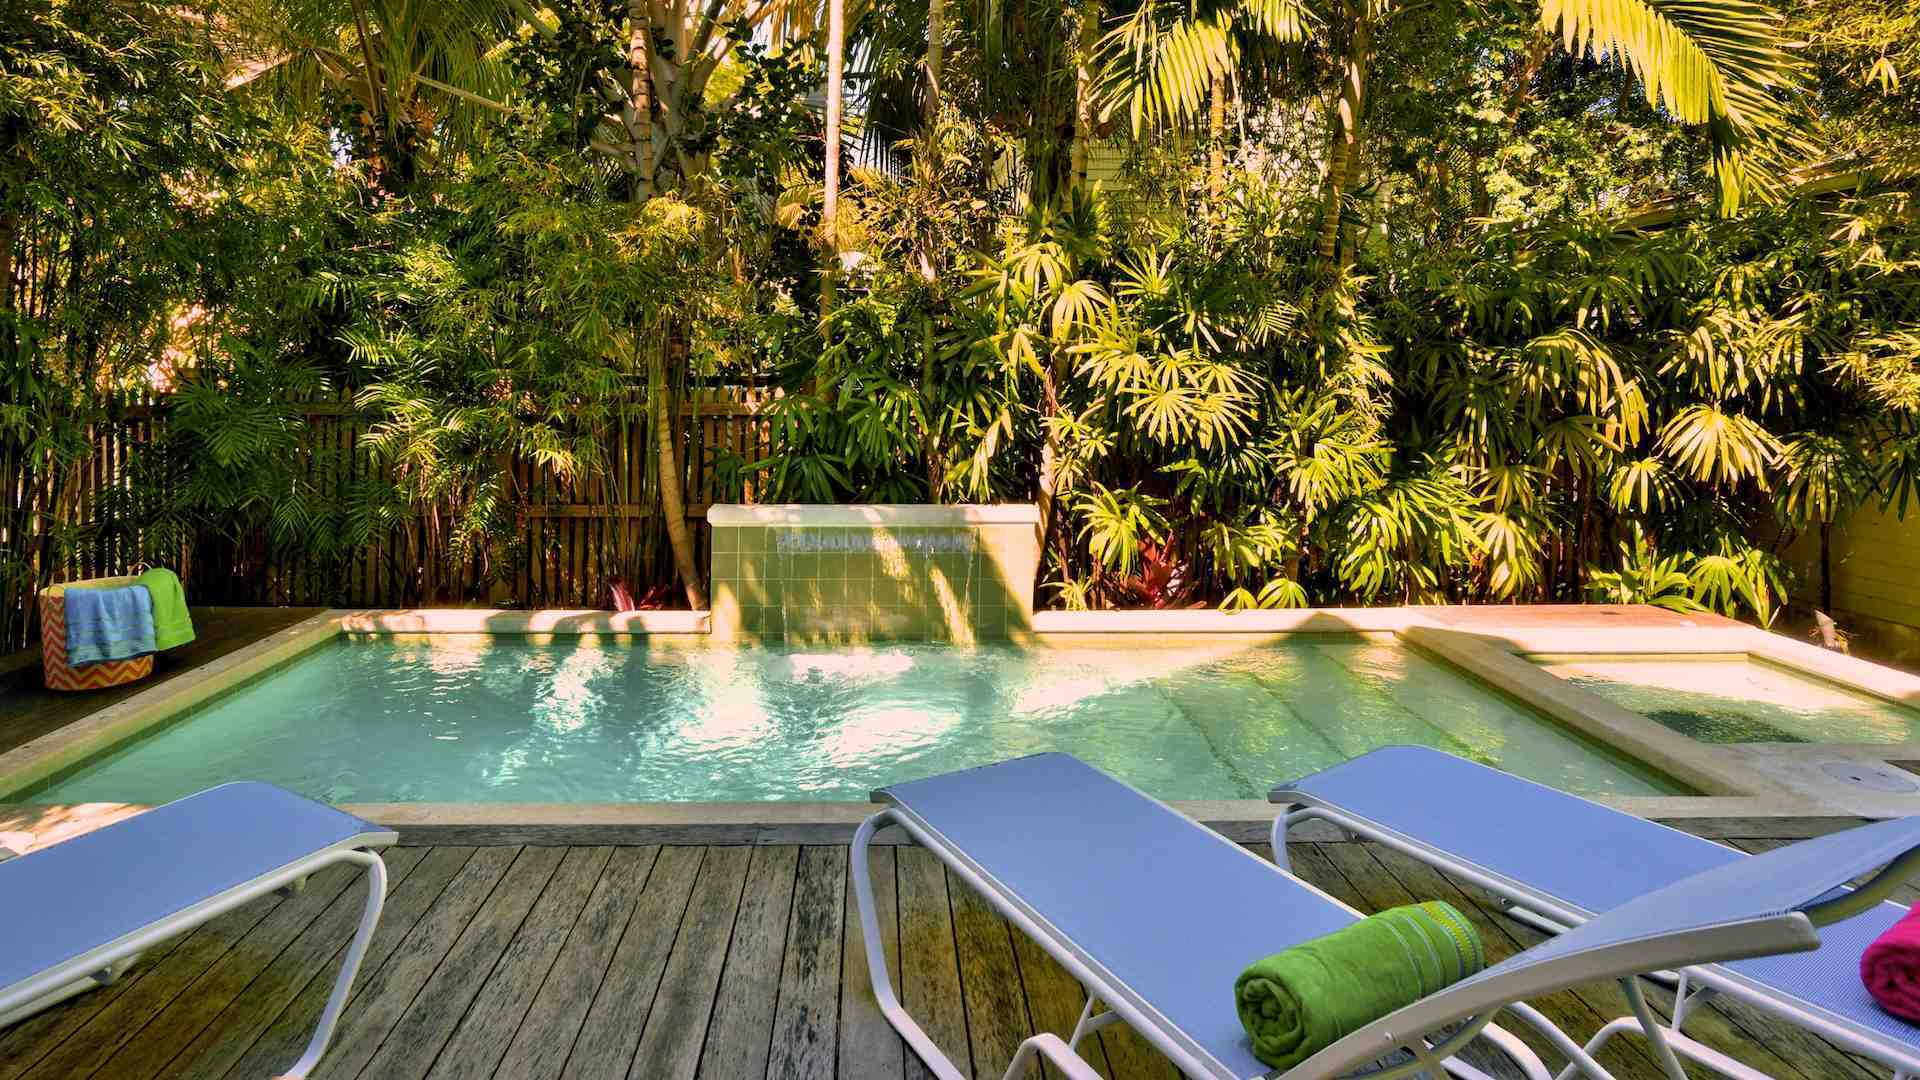 The pool features a soothing waterfall and a separate Jacuzzi large enough for four...